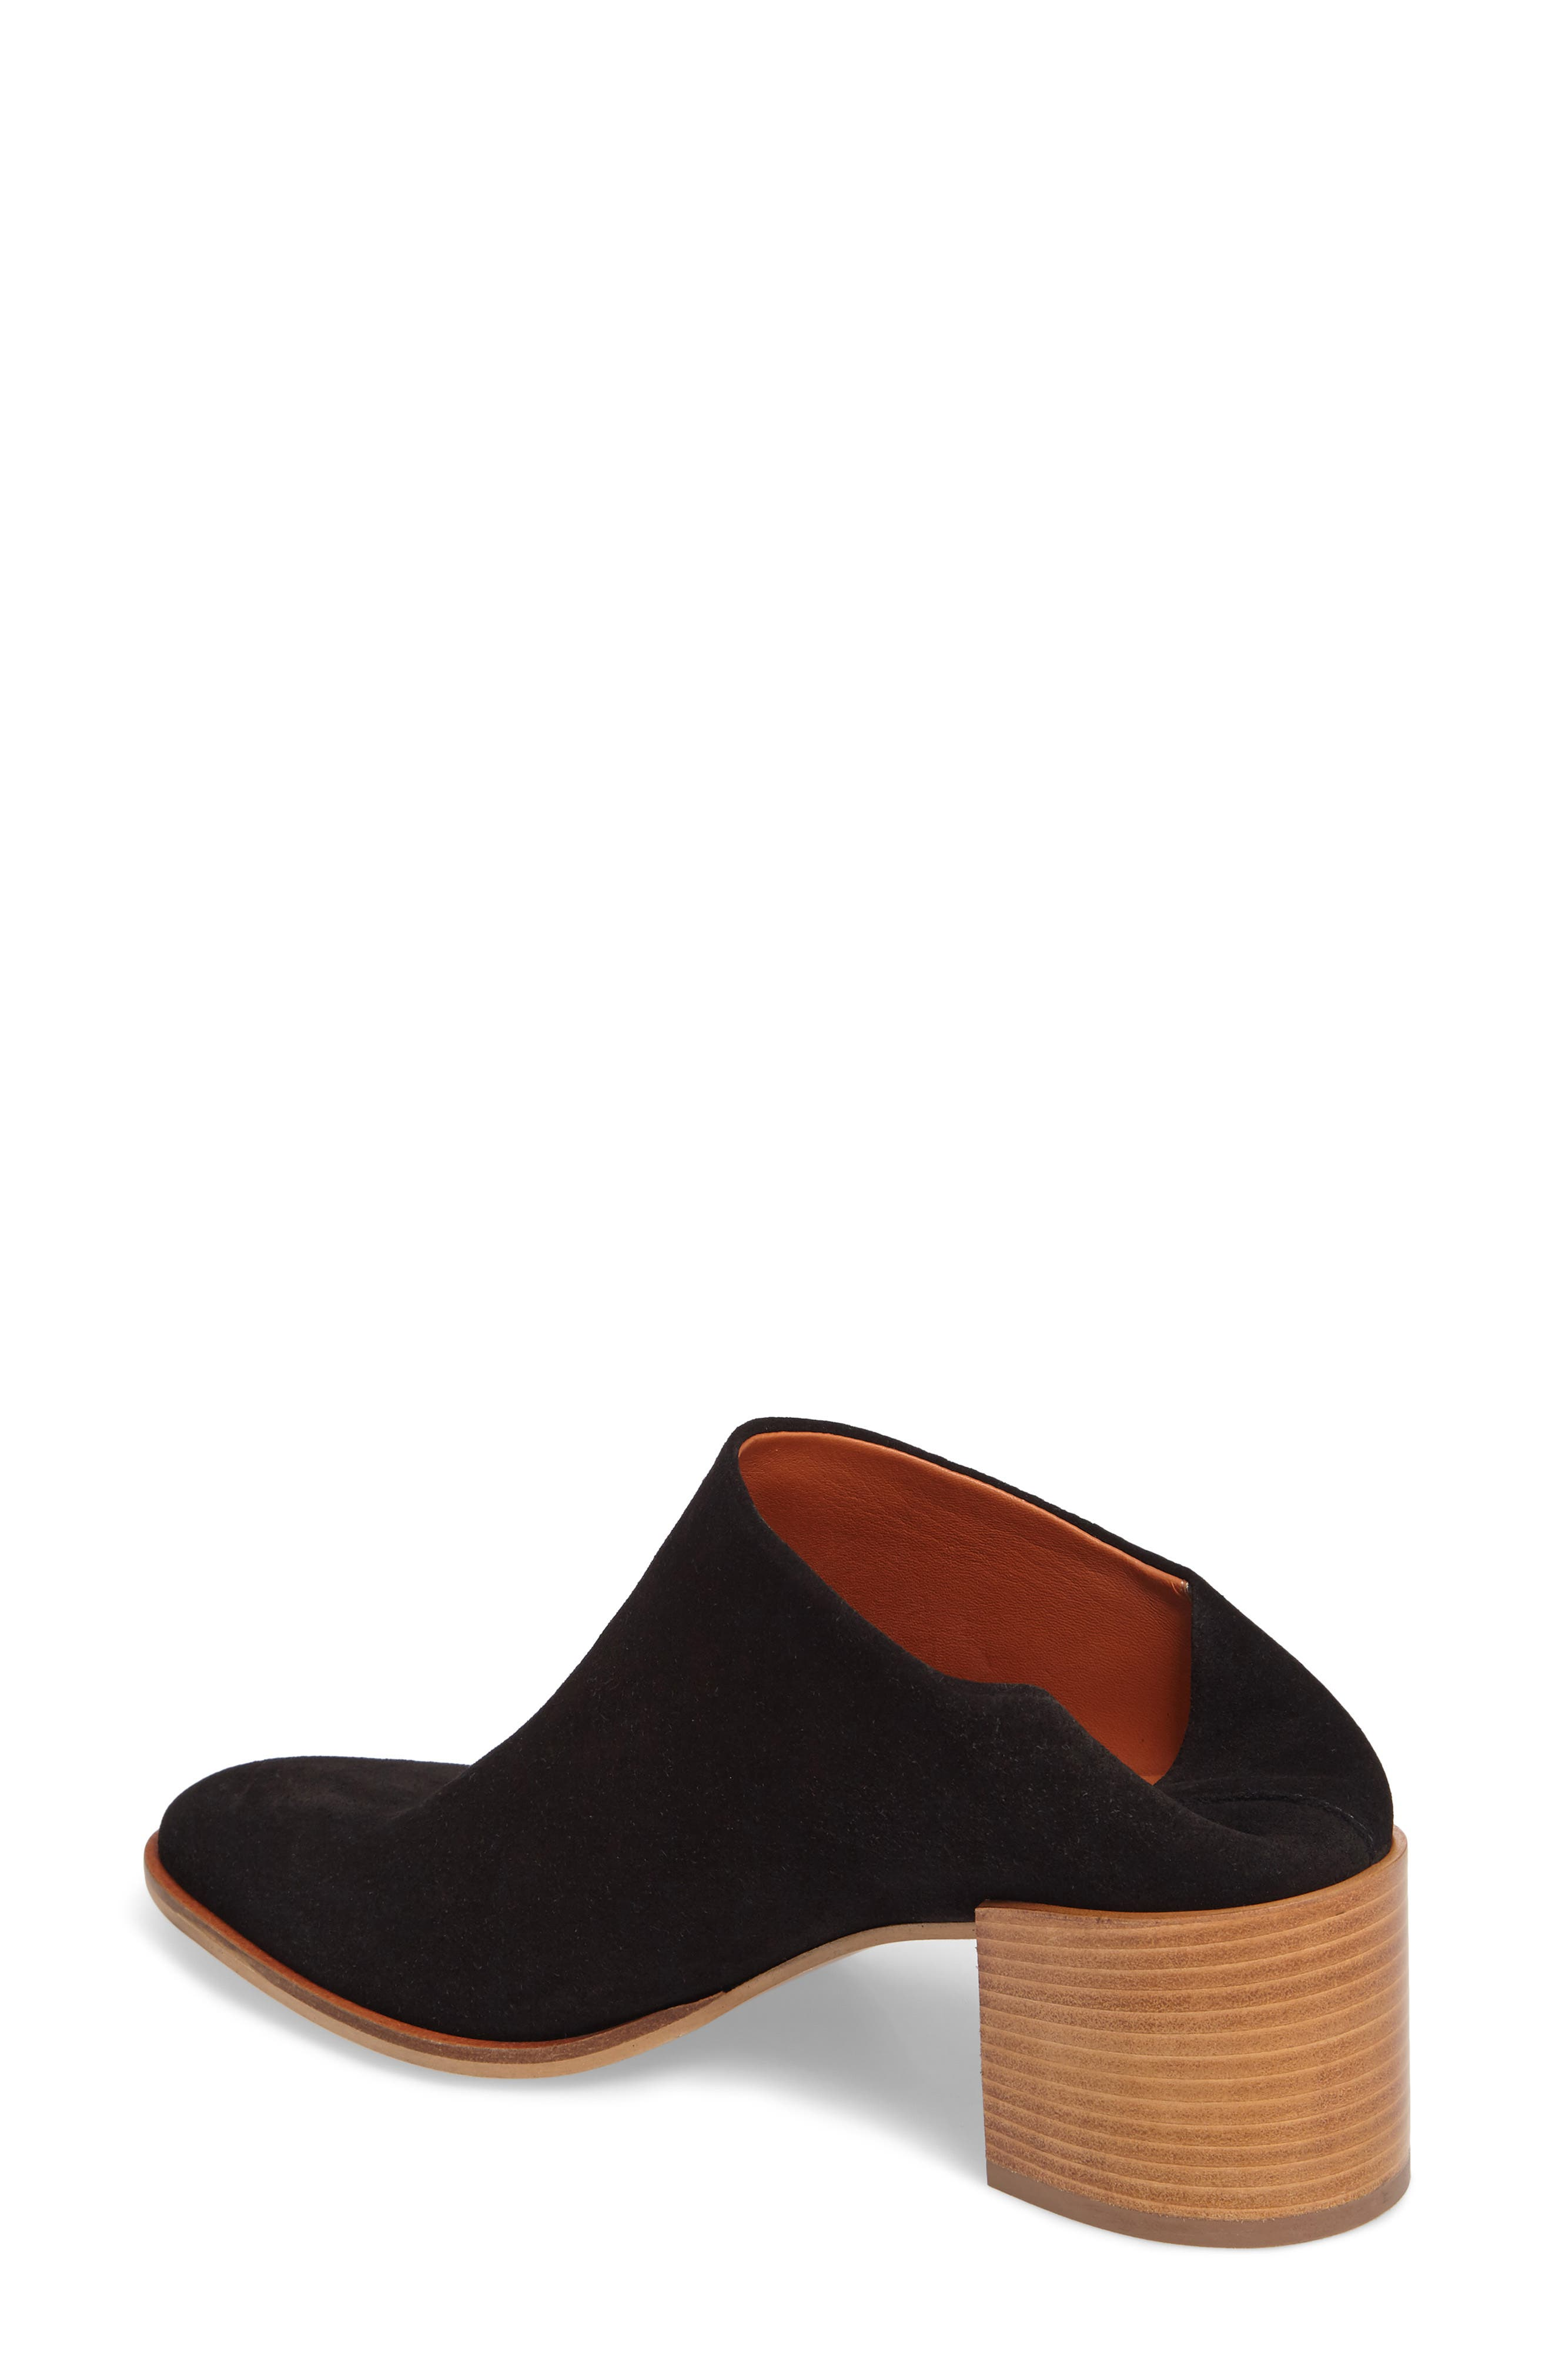 Alternate Image 2  - Everlane The Suede Heel Mule (Women)